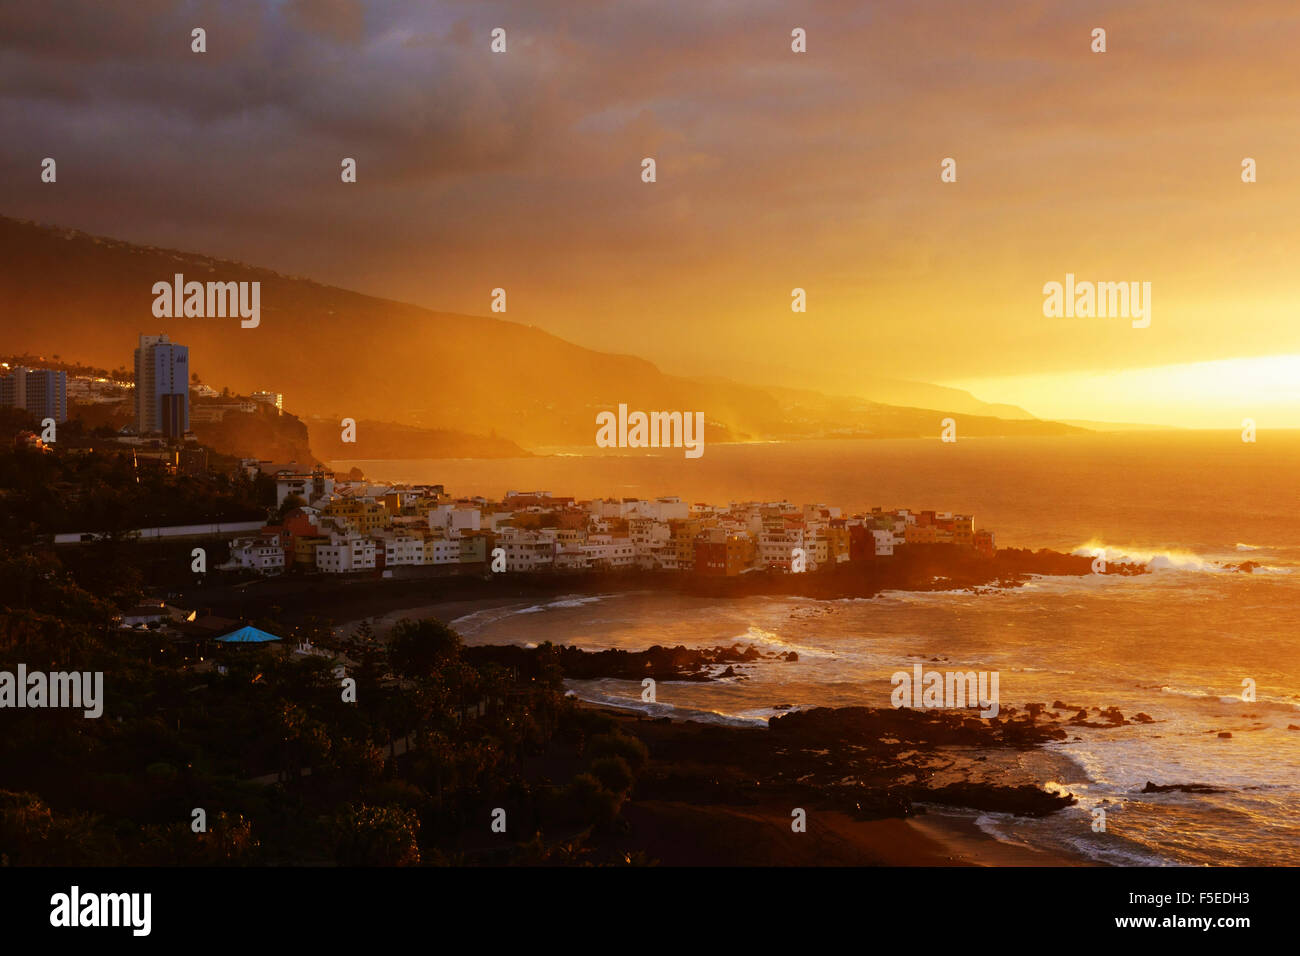 View of punta brava and playa jardin at sunset puerto de la cruz stock photo royalty free - Playa puerto de la cruz tenerife ...